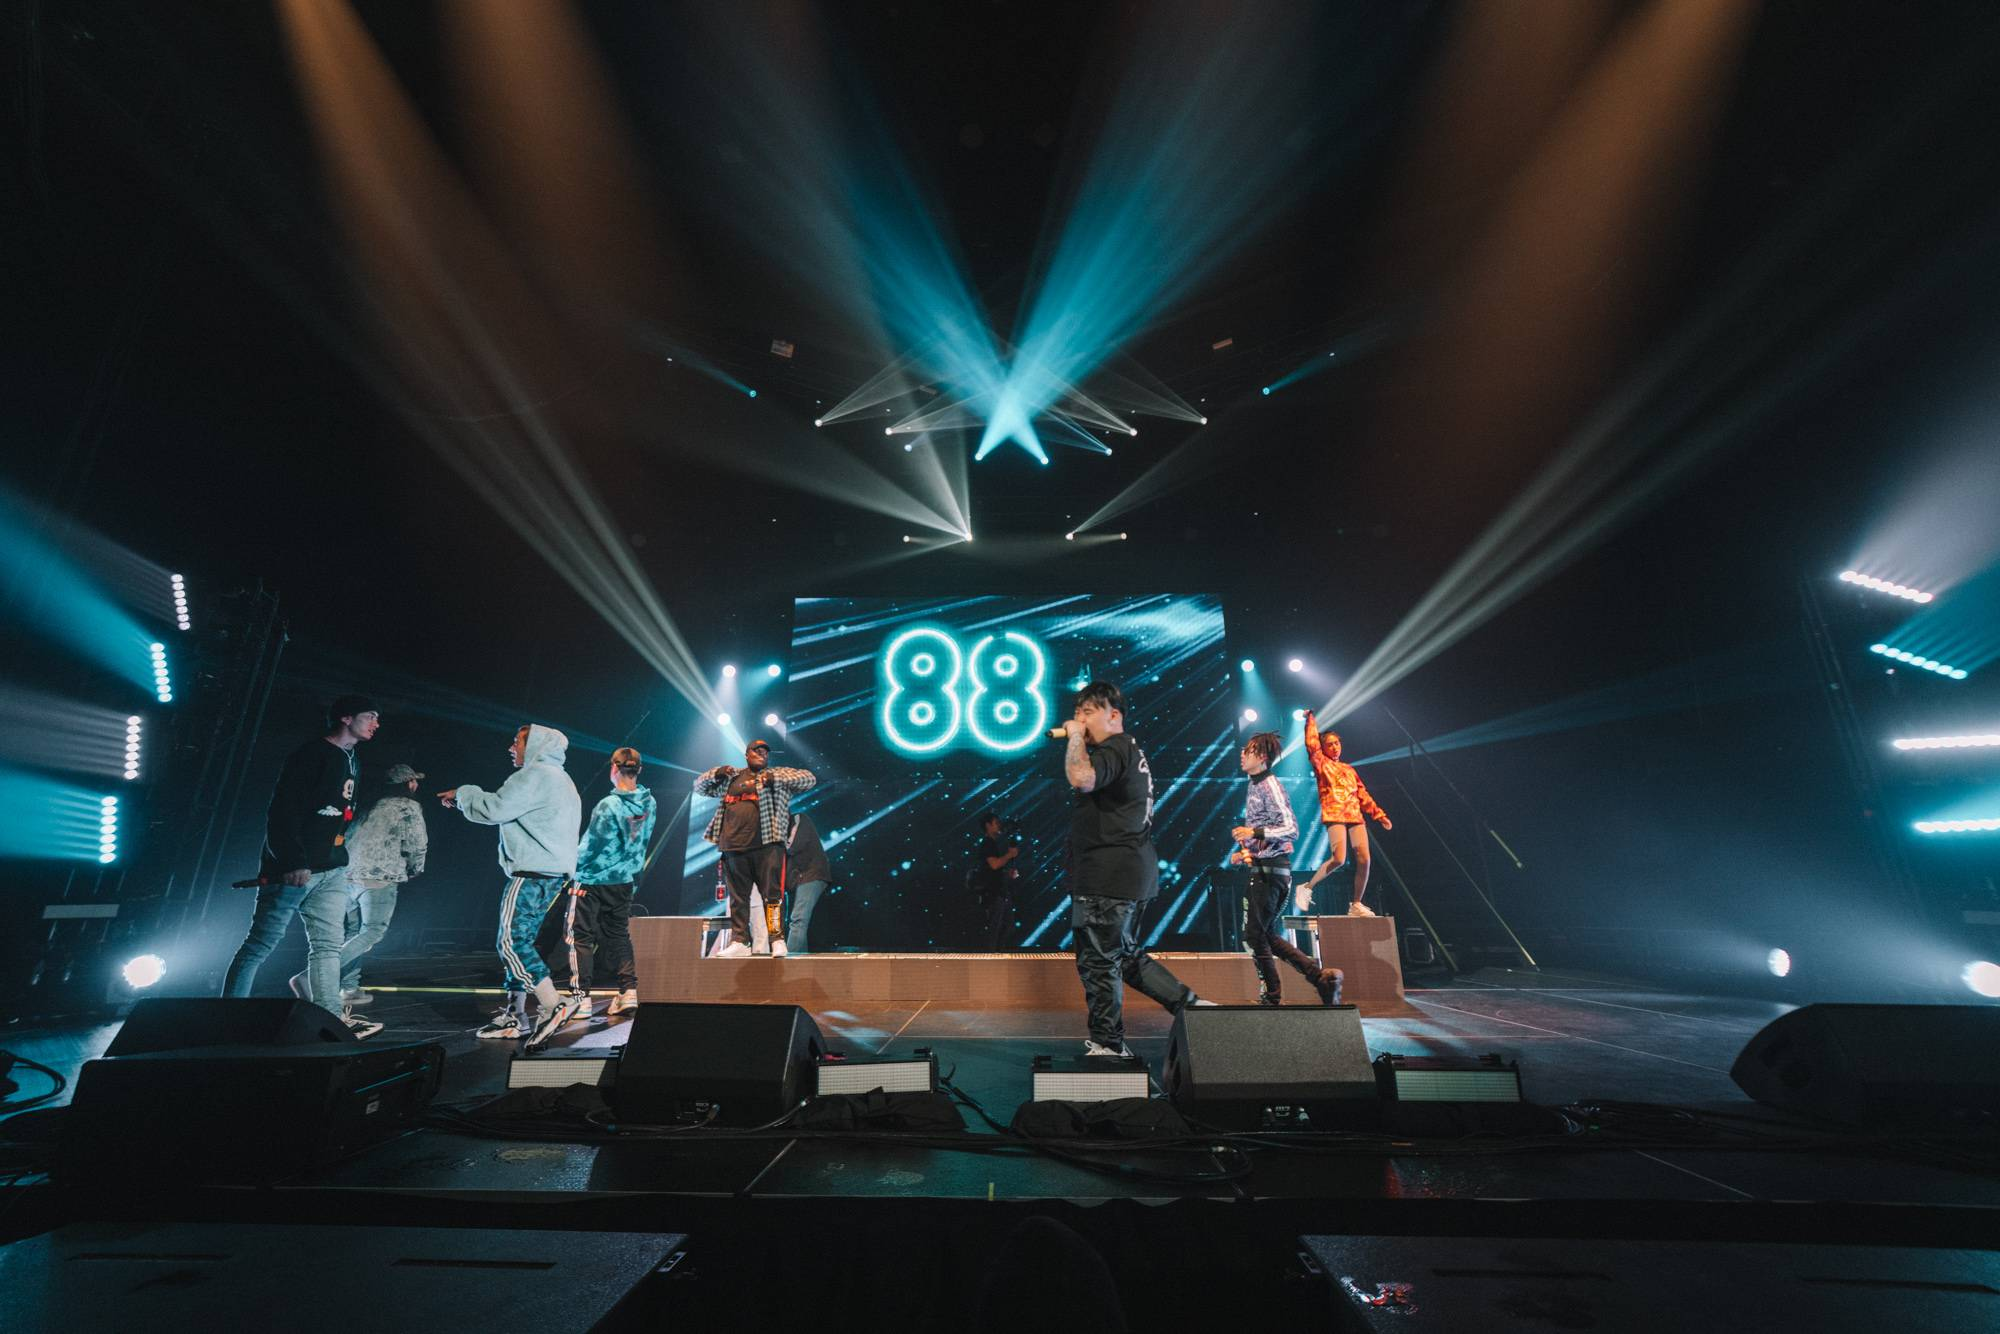 88RISING at the Pacific Coliseum, Vancouver, Oct 26 2018. Noah Shumka photo.